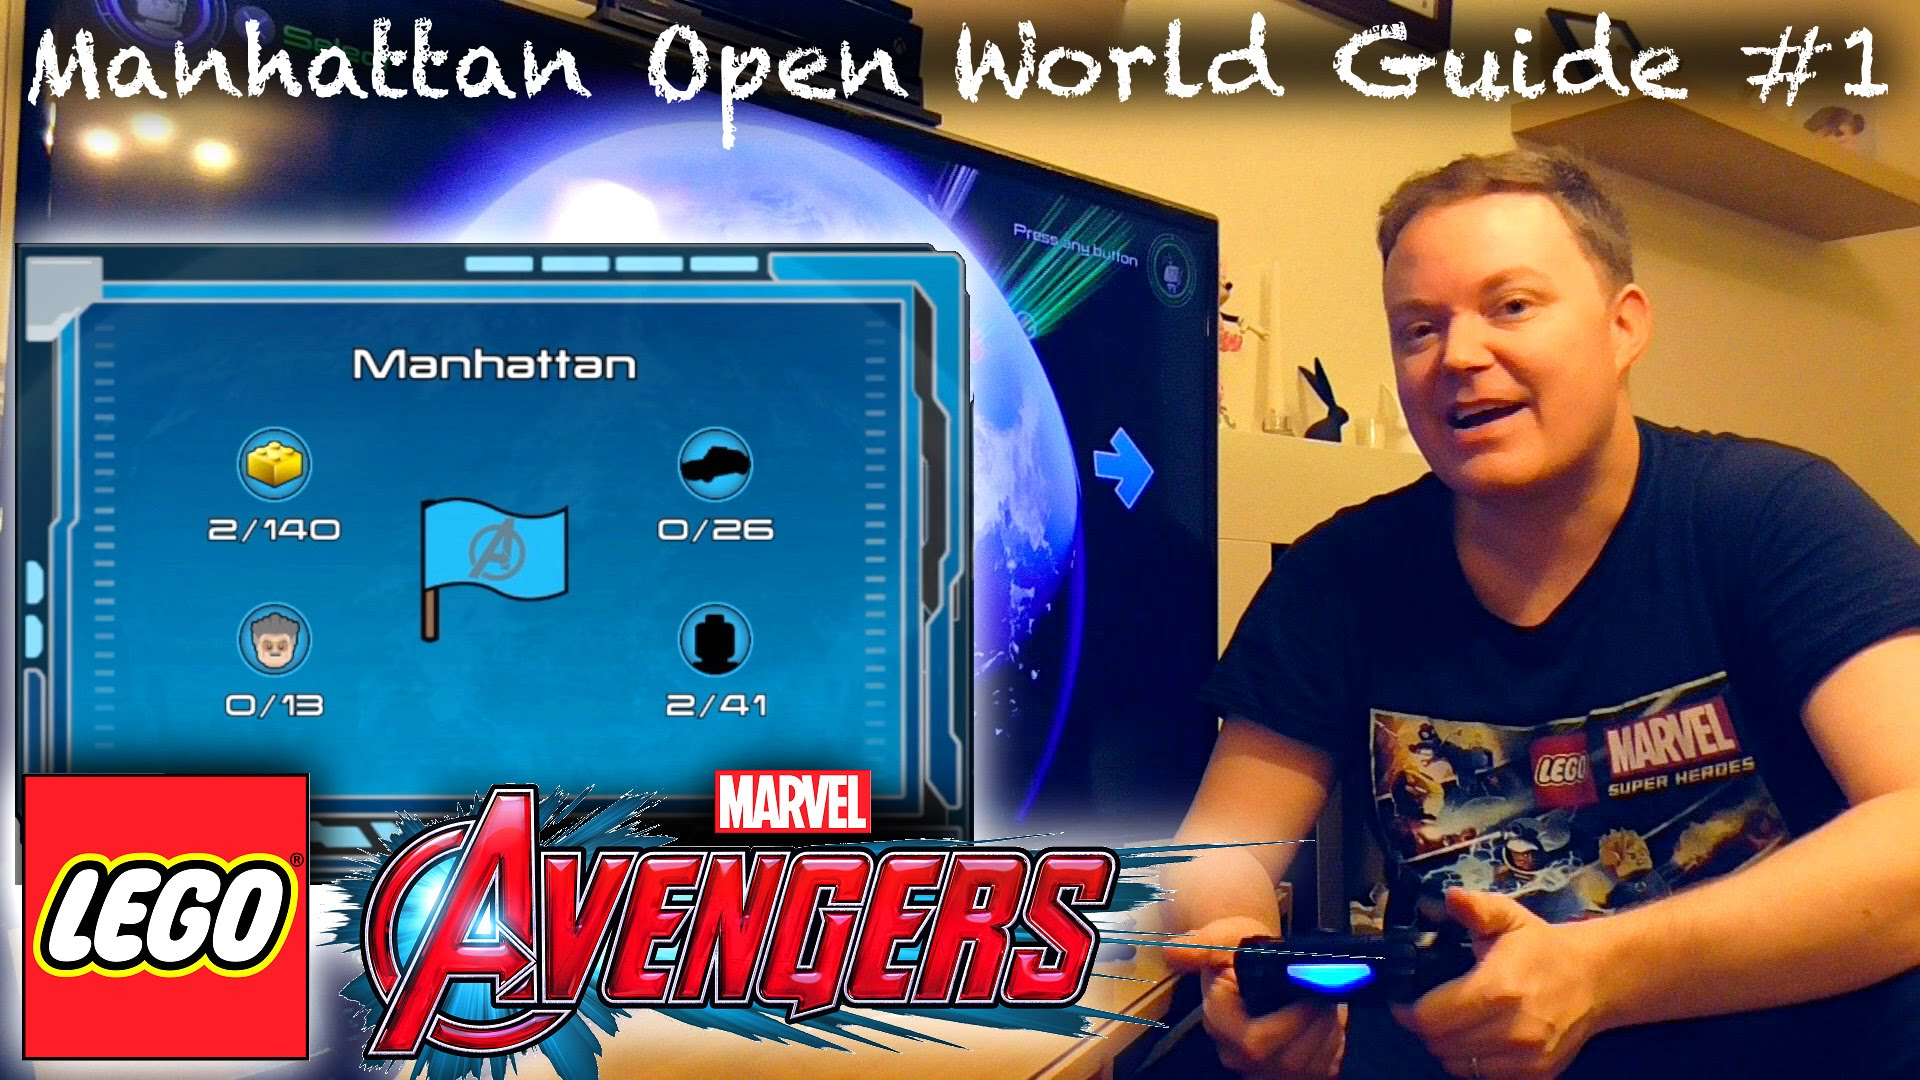 LEGO Marvel Avengers – Manhattan / New York Open World Guide #1